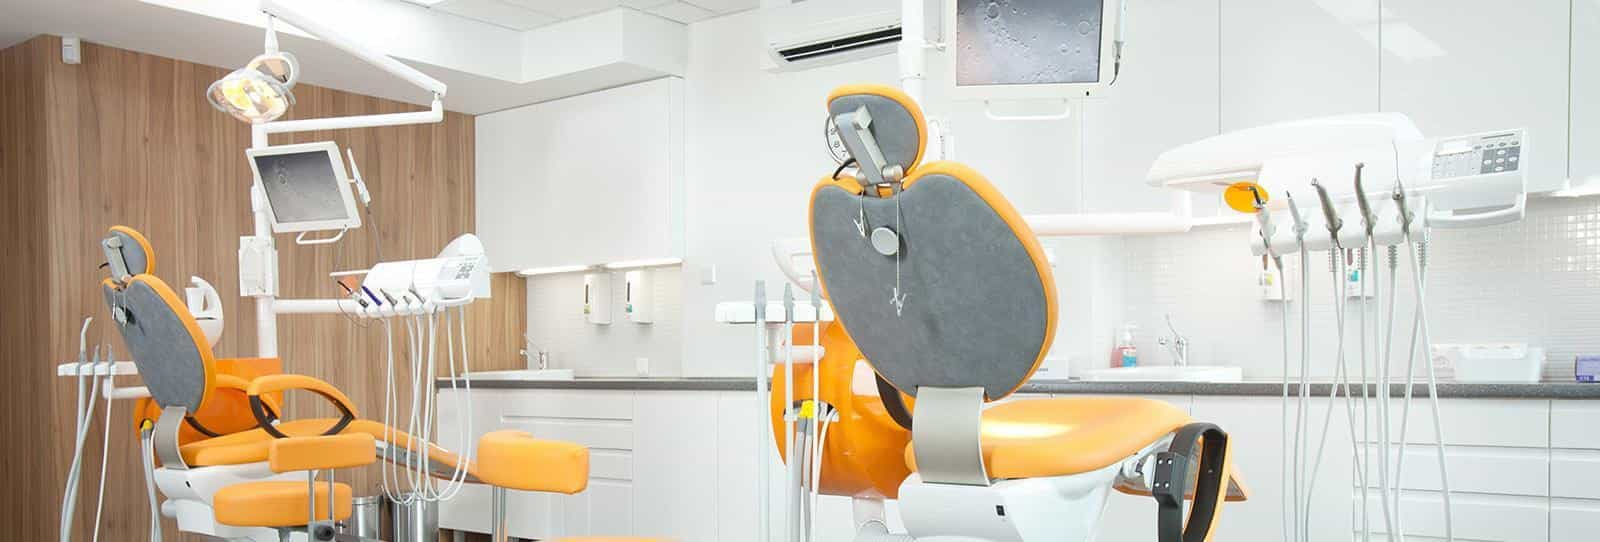 Save 50-70% on Dental Implant Treatment and Restorative Dentistry in Gdansk, Poland